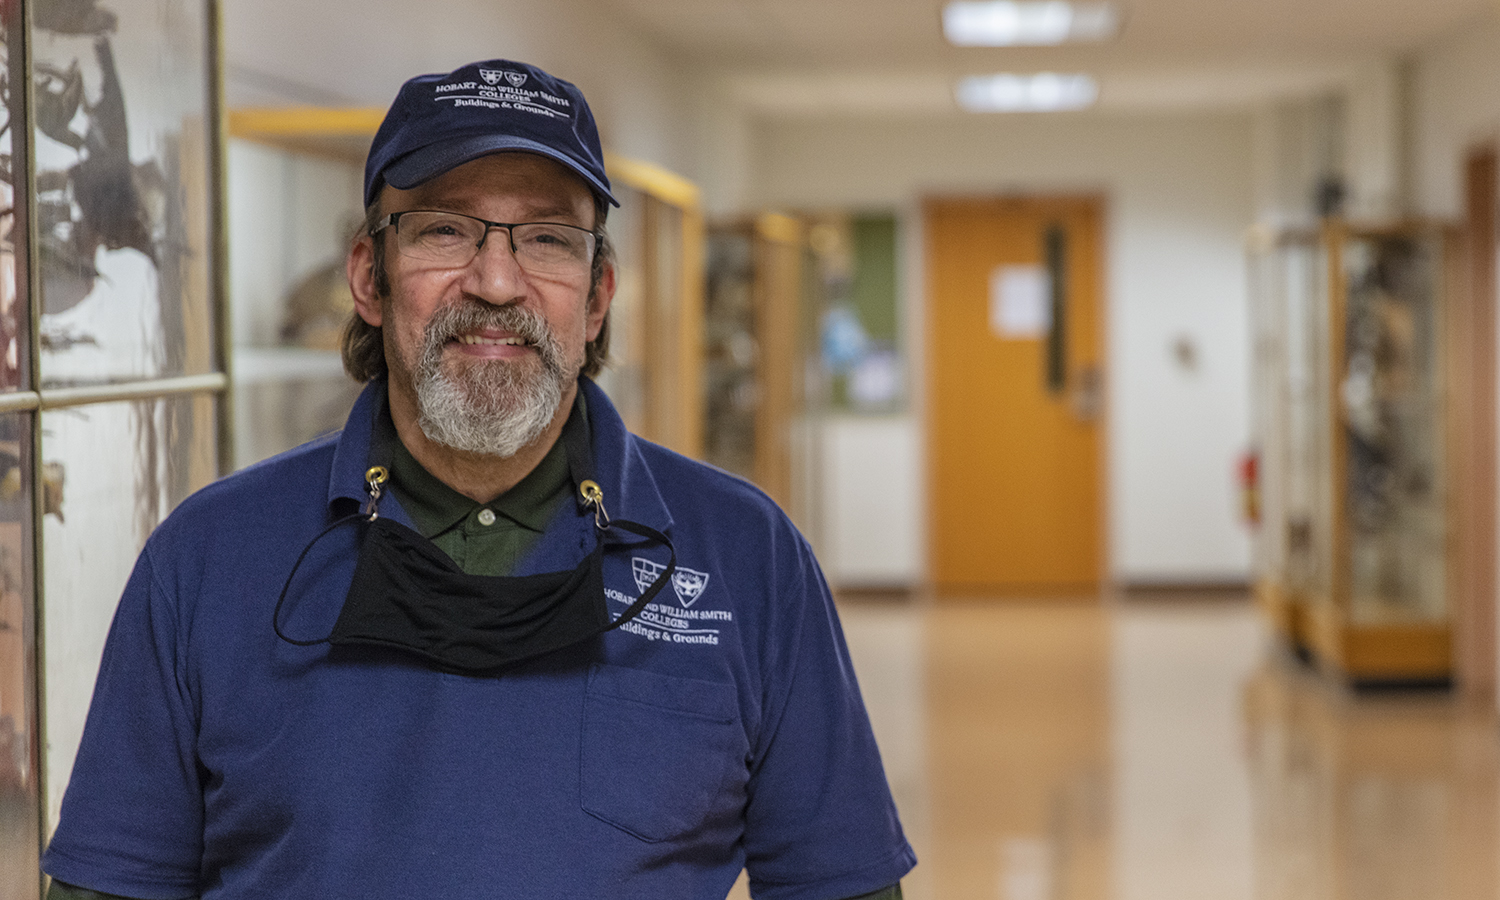 Heavy Duty Custodian Mark Cardinale poses in Eaton Hall on his last day of work. Cardinale has retired after working the night shift, primarily in the science buildings, for 33 years.